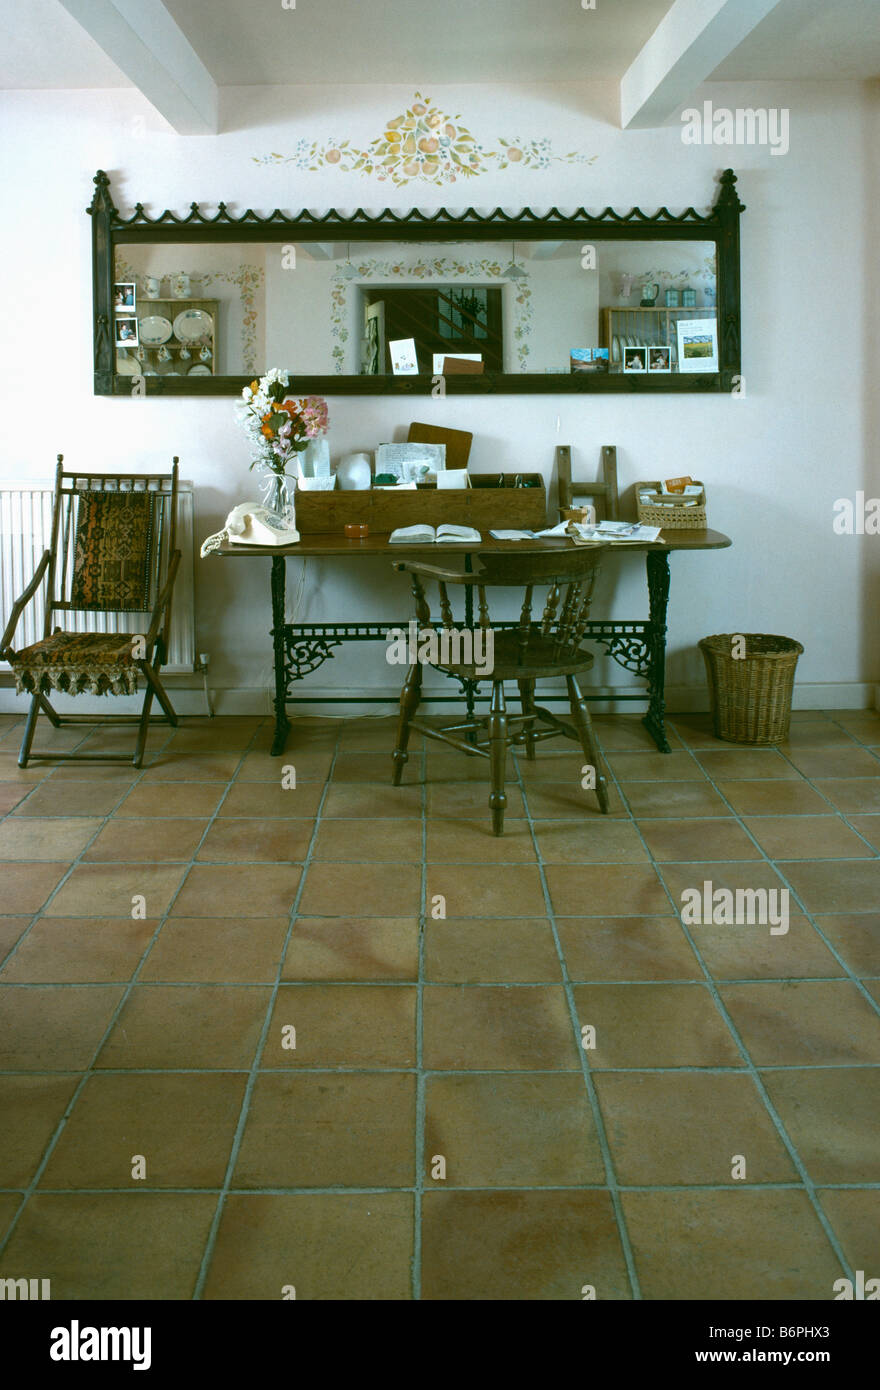 Antique terracotta floor tiles stock photos antique terracotta long narrow mirror above antique desk and chairs in study area of traditional white hall with dailygadgetfo Gallery